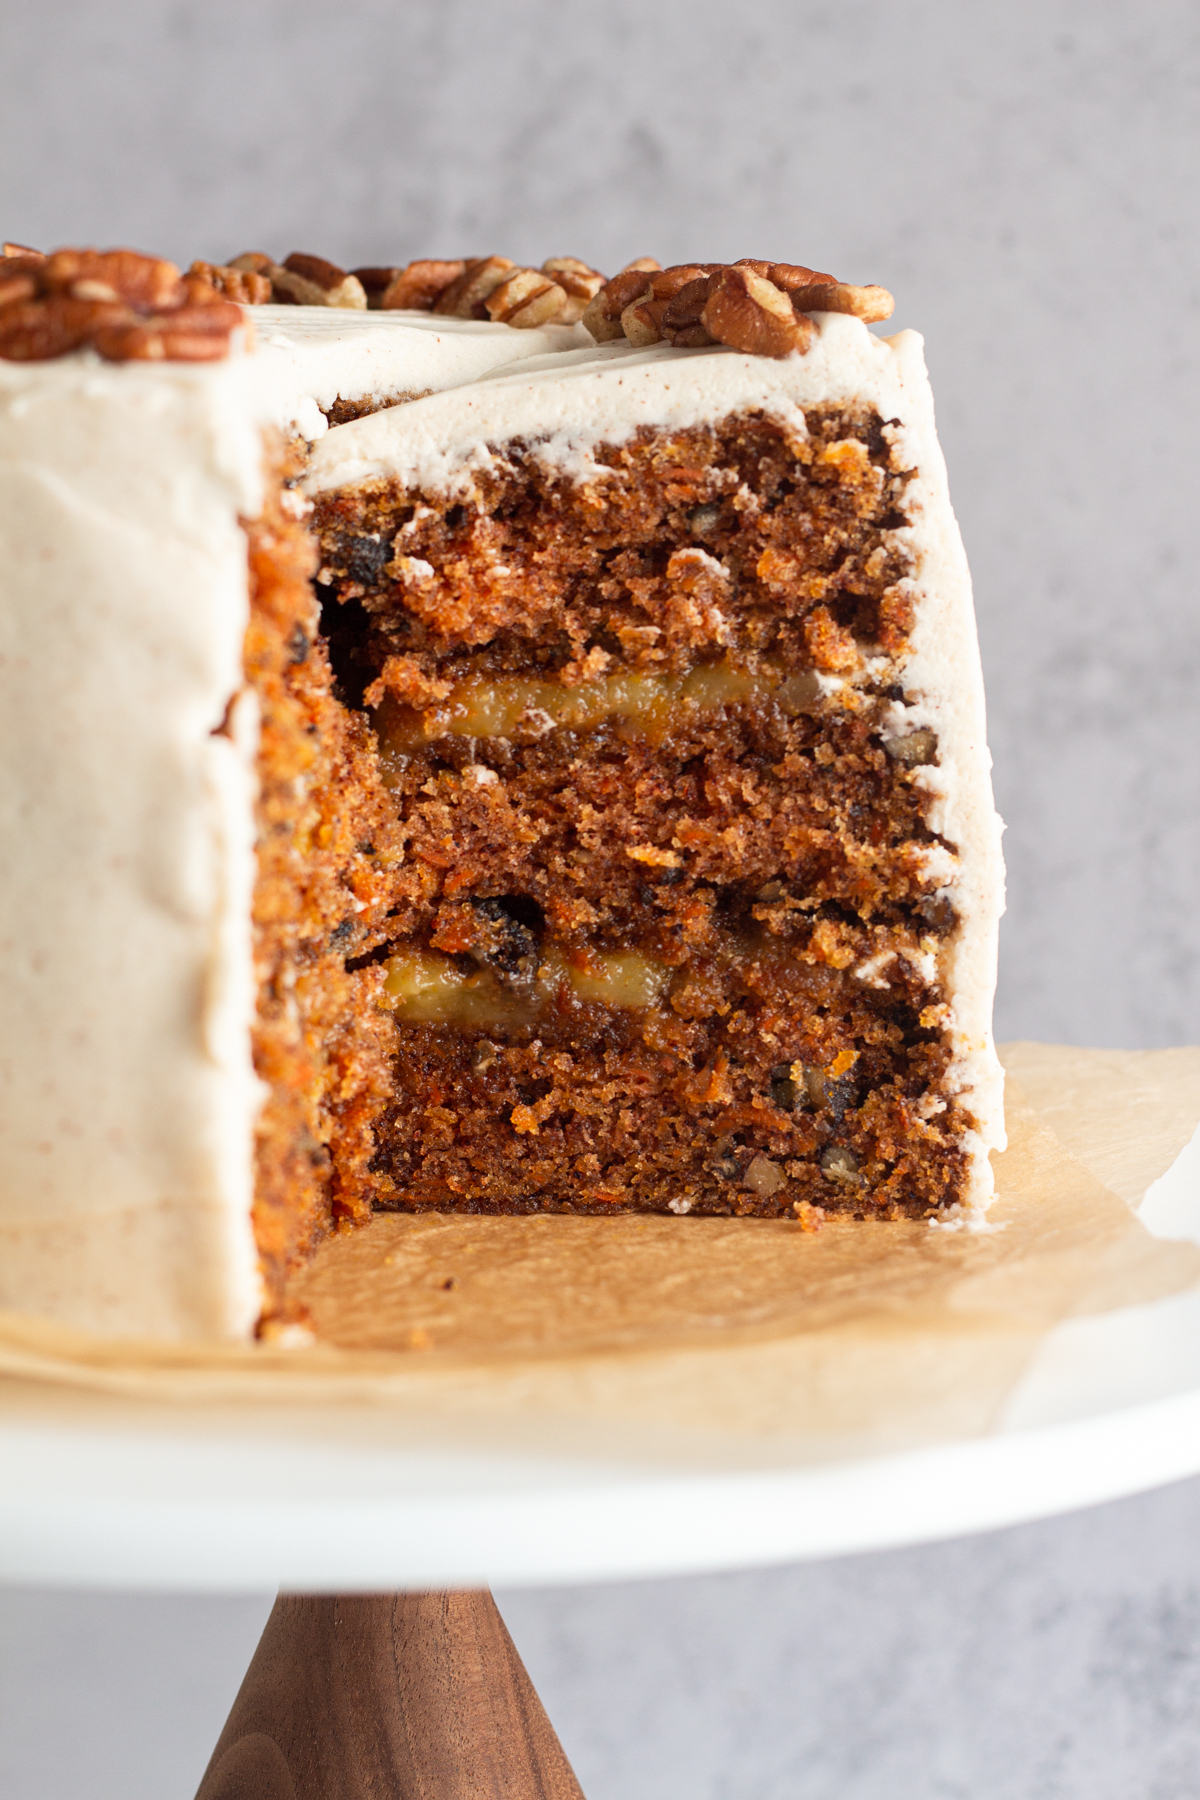 side view of a sliced carrot layer cake